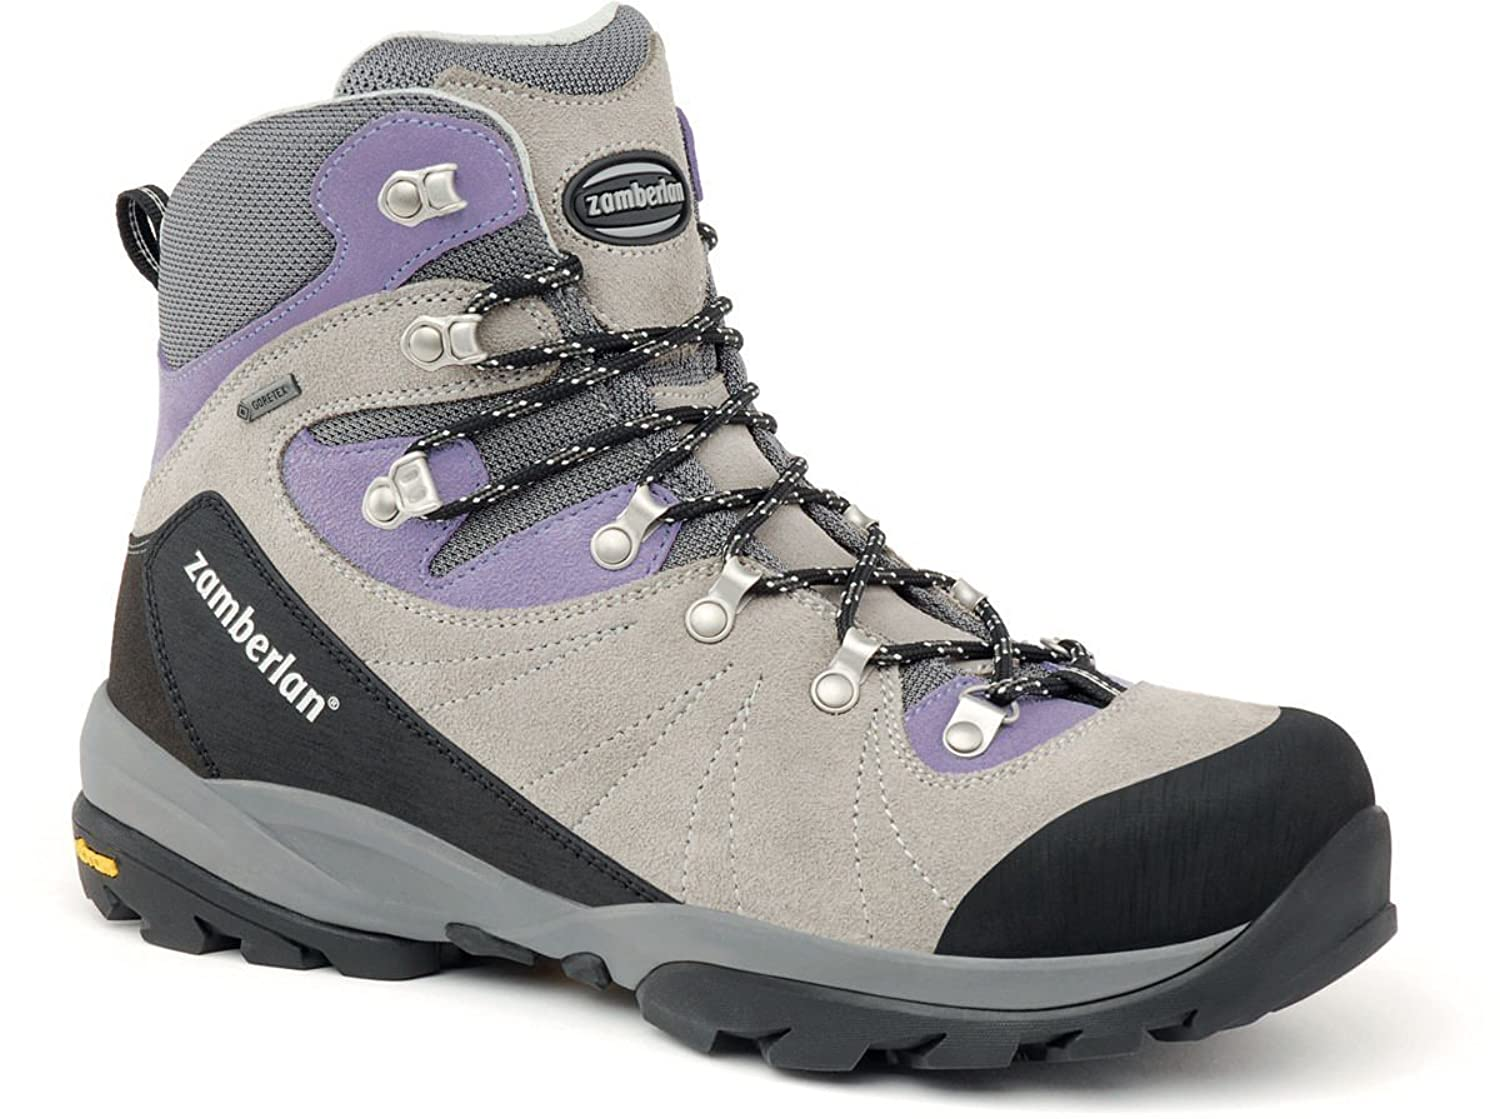 Zamberlan Women's 568 Bora GORE-TEX RR Backpacking Boot